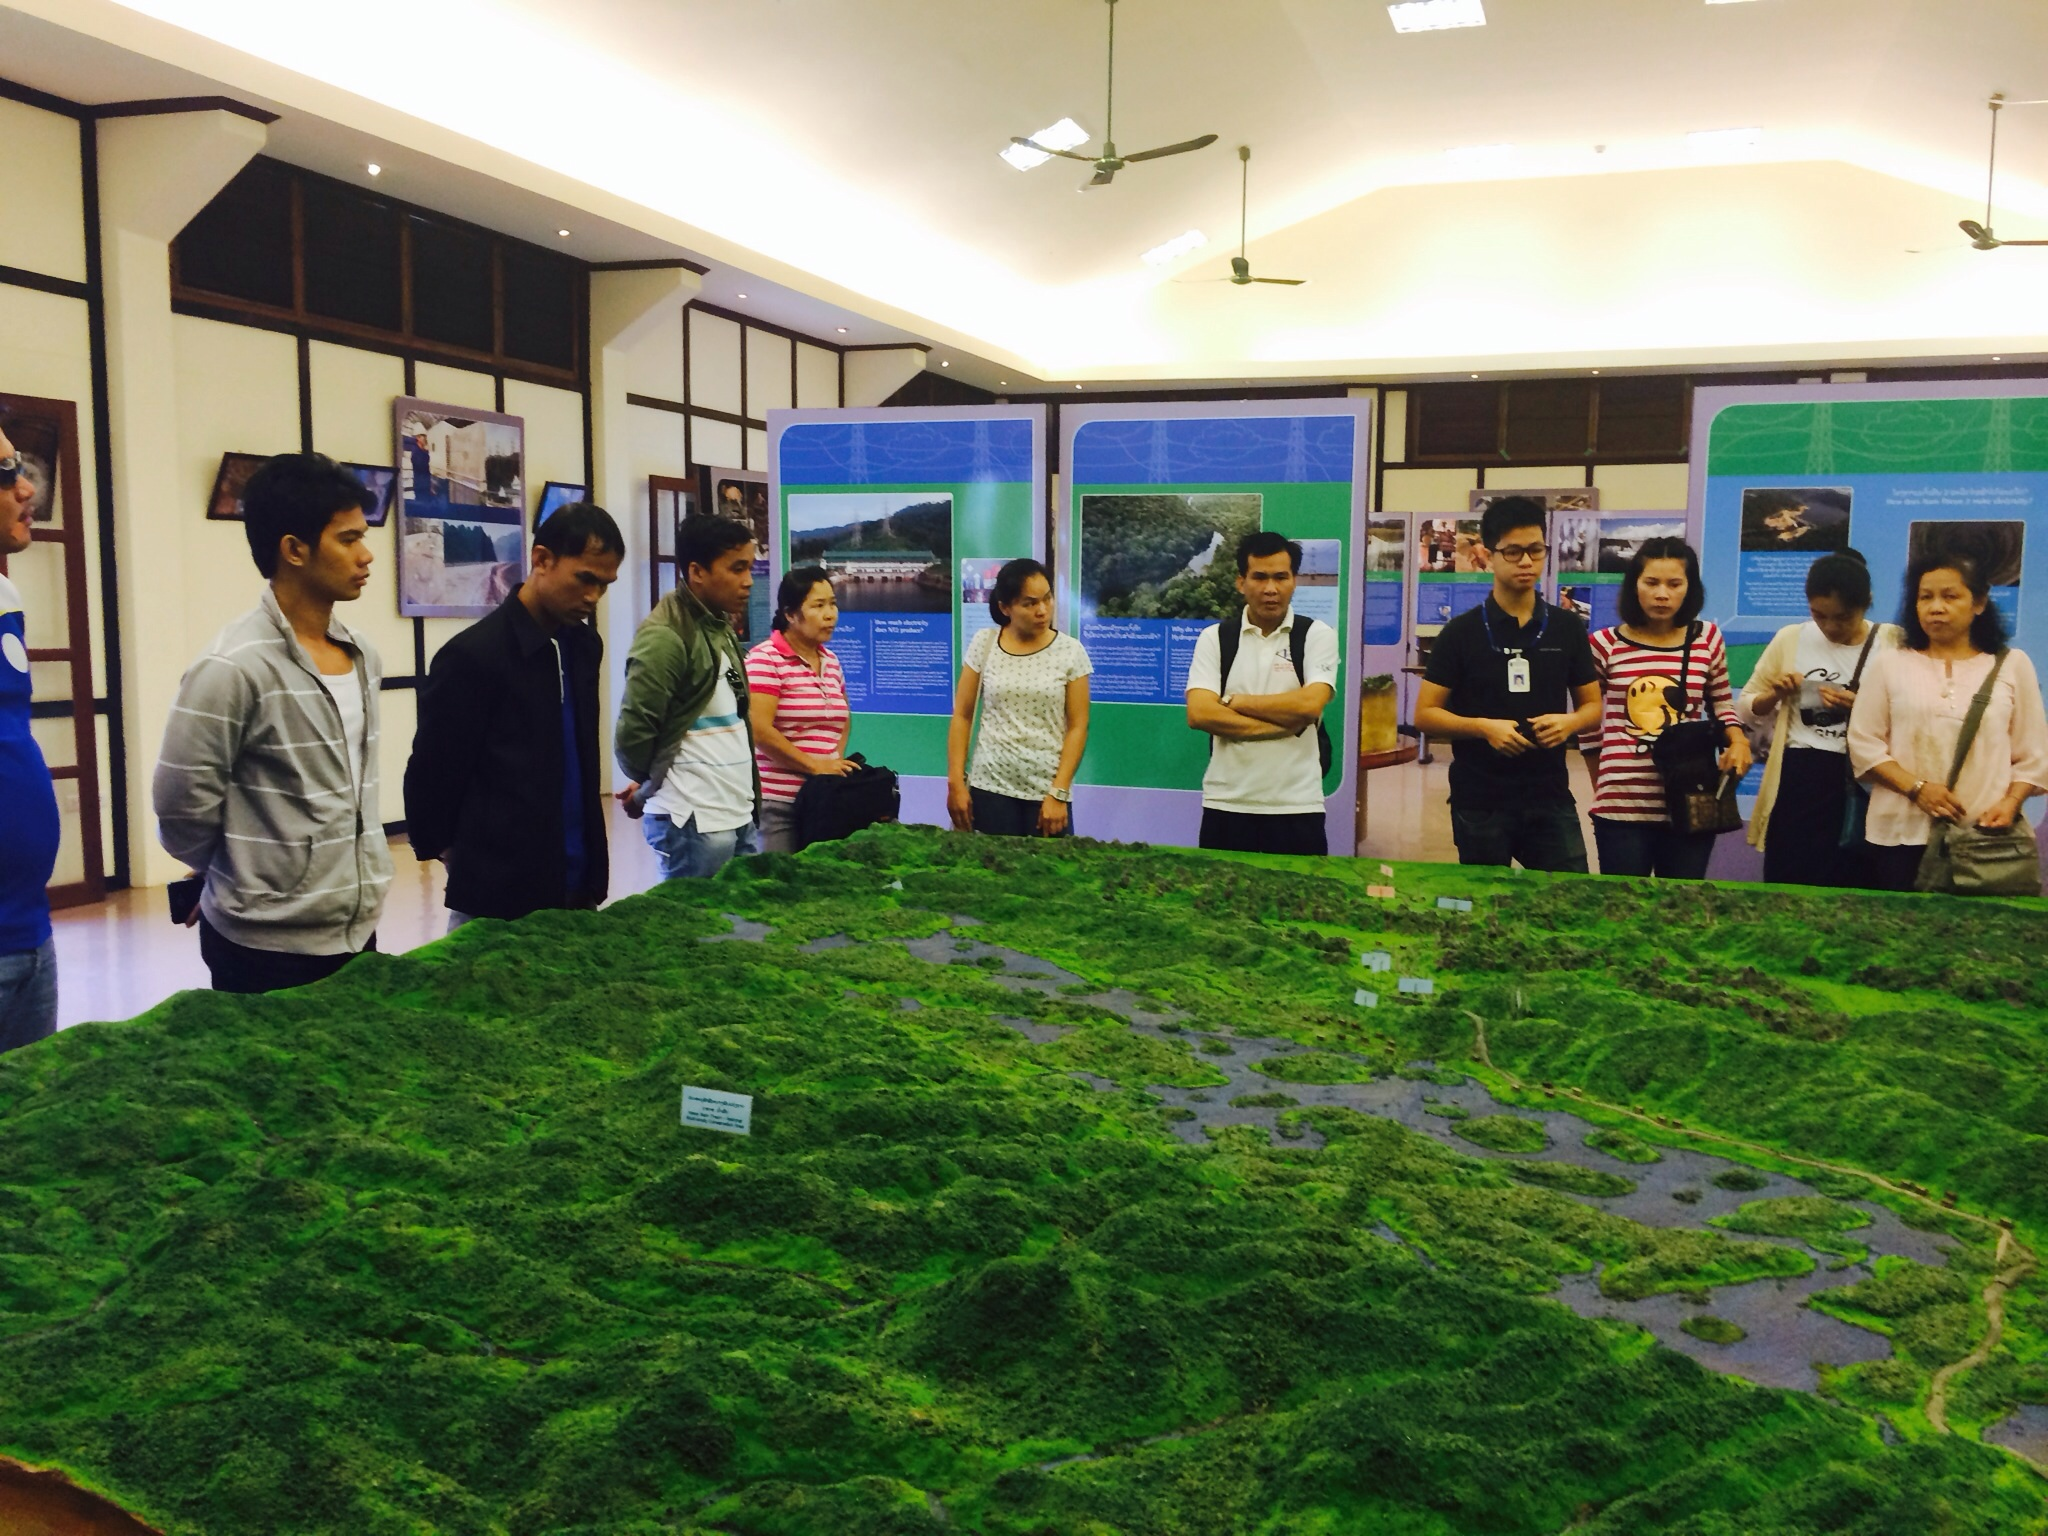 Participants look at the 3D representation of the project